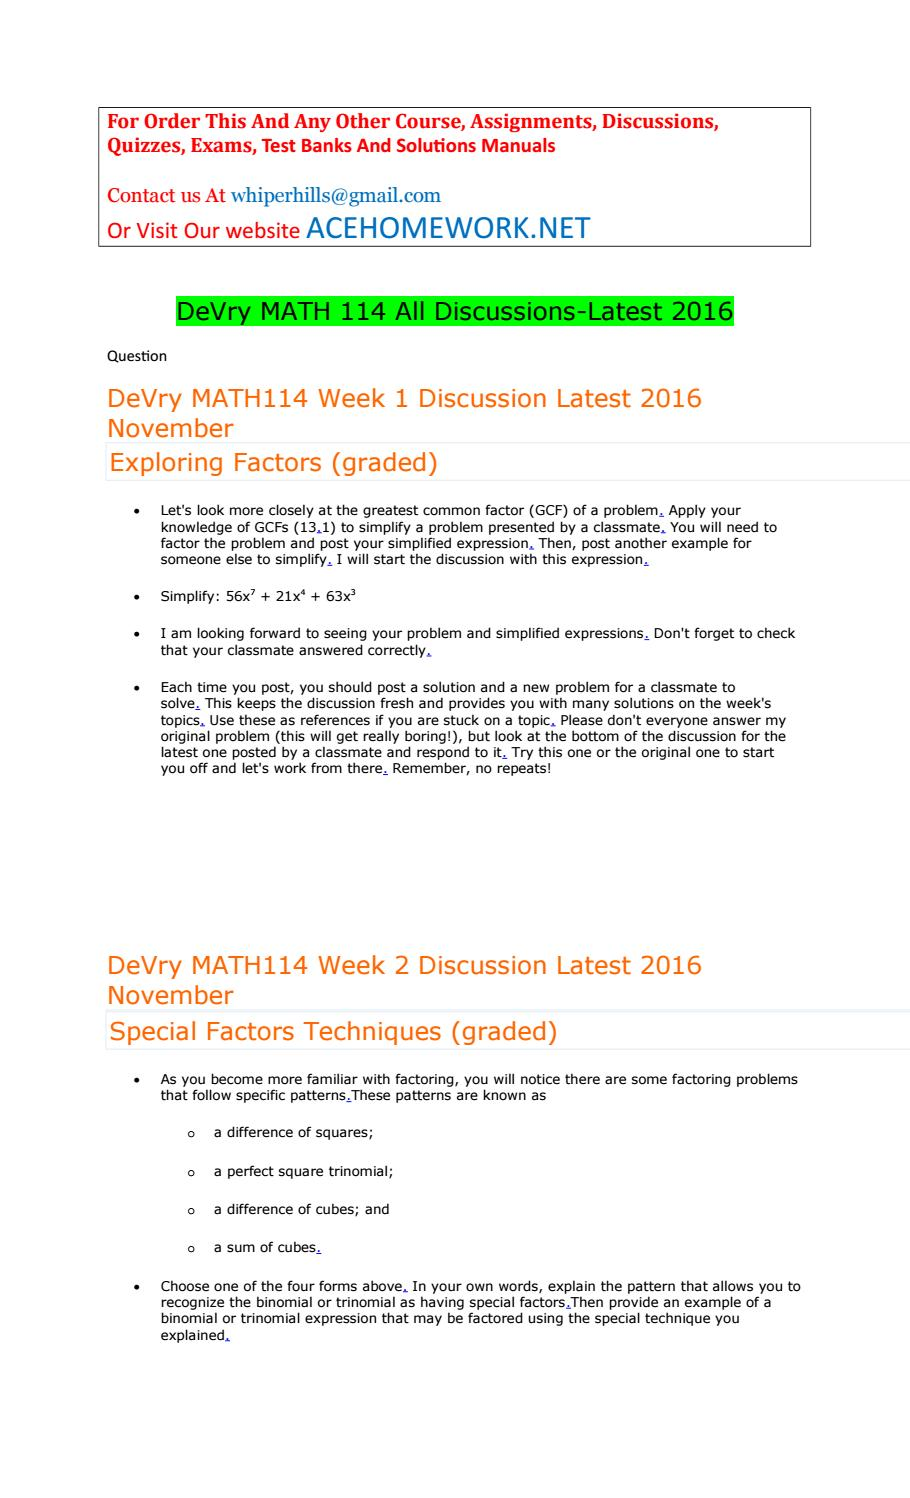 Devry Math 114 All Discussions Latest 2016 By Ewteww Issuu Examples Of  Factoring Quadratic Trinomials With